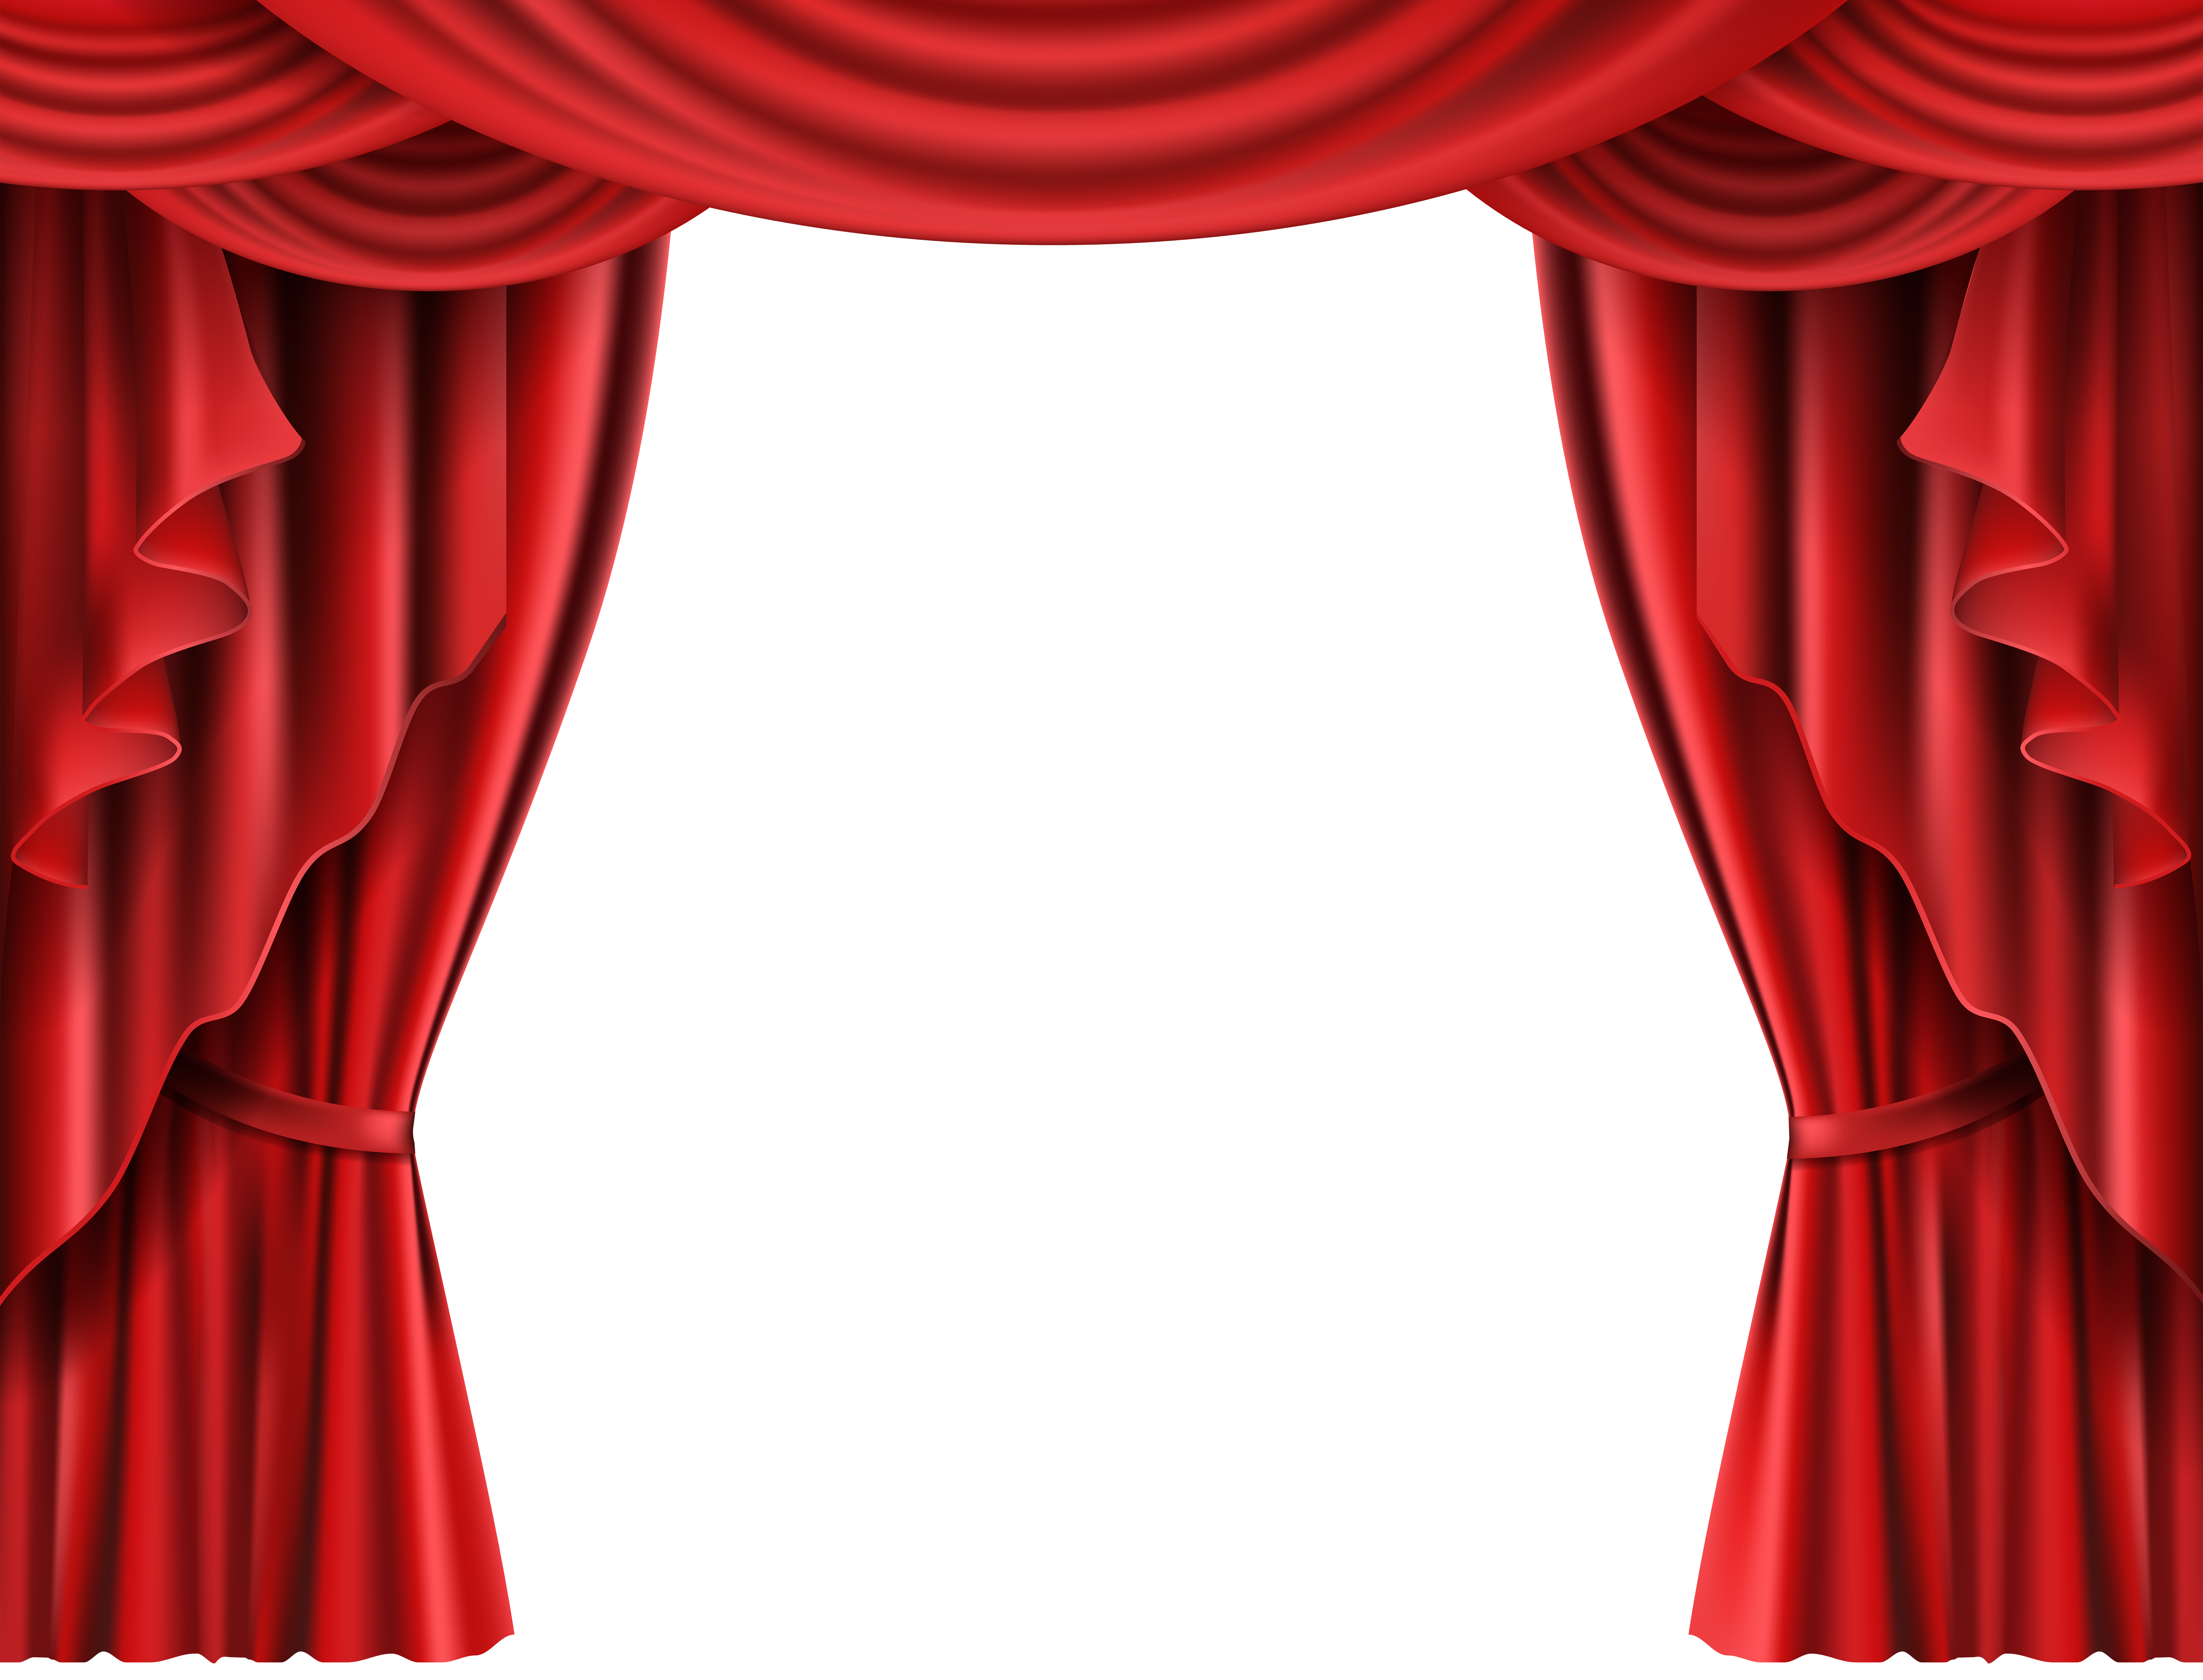 Theatre curtain png. Red theater transparent clip